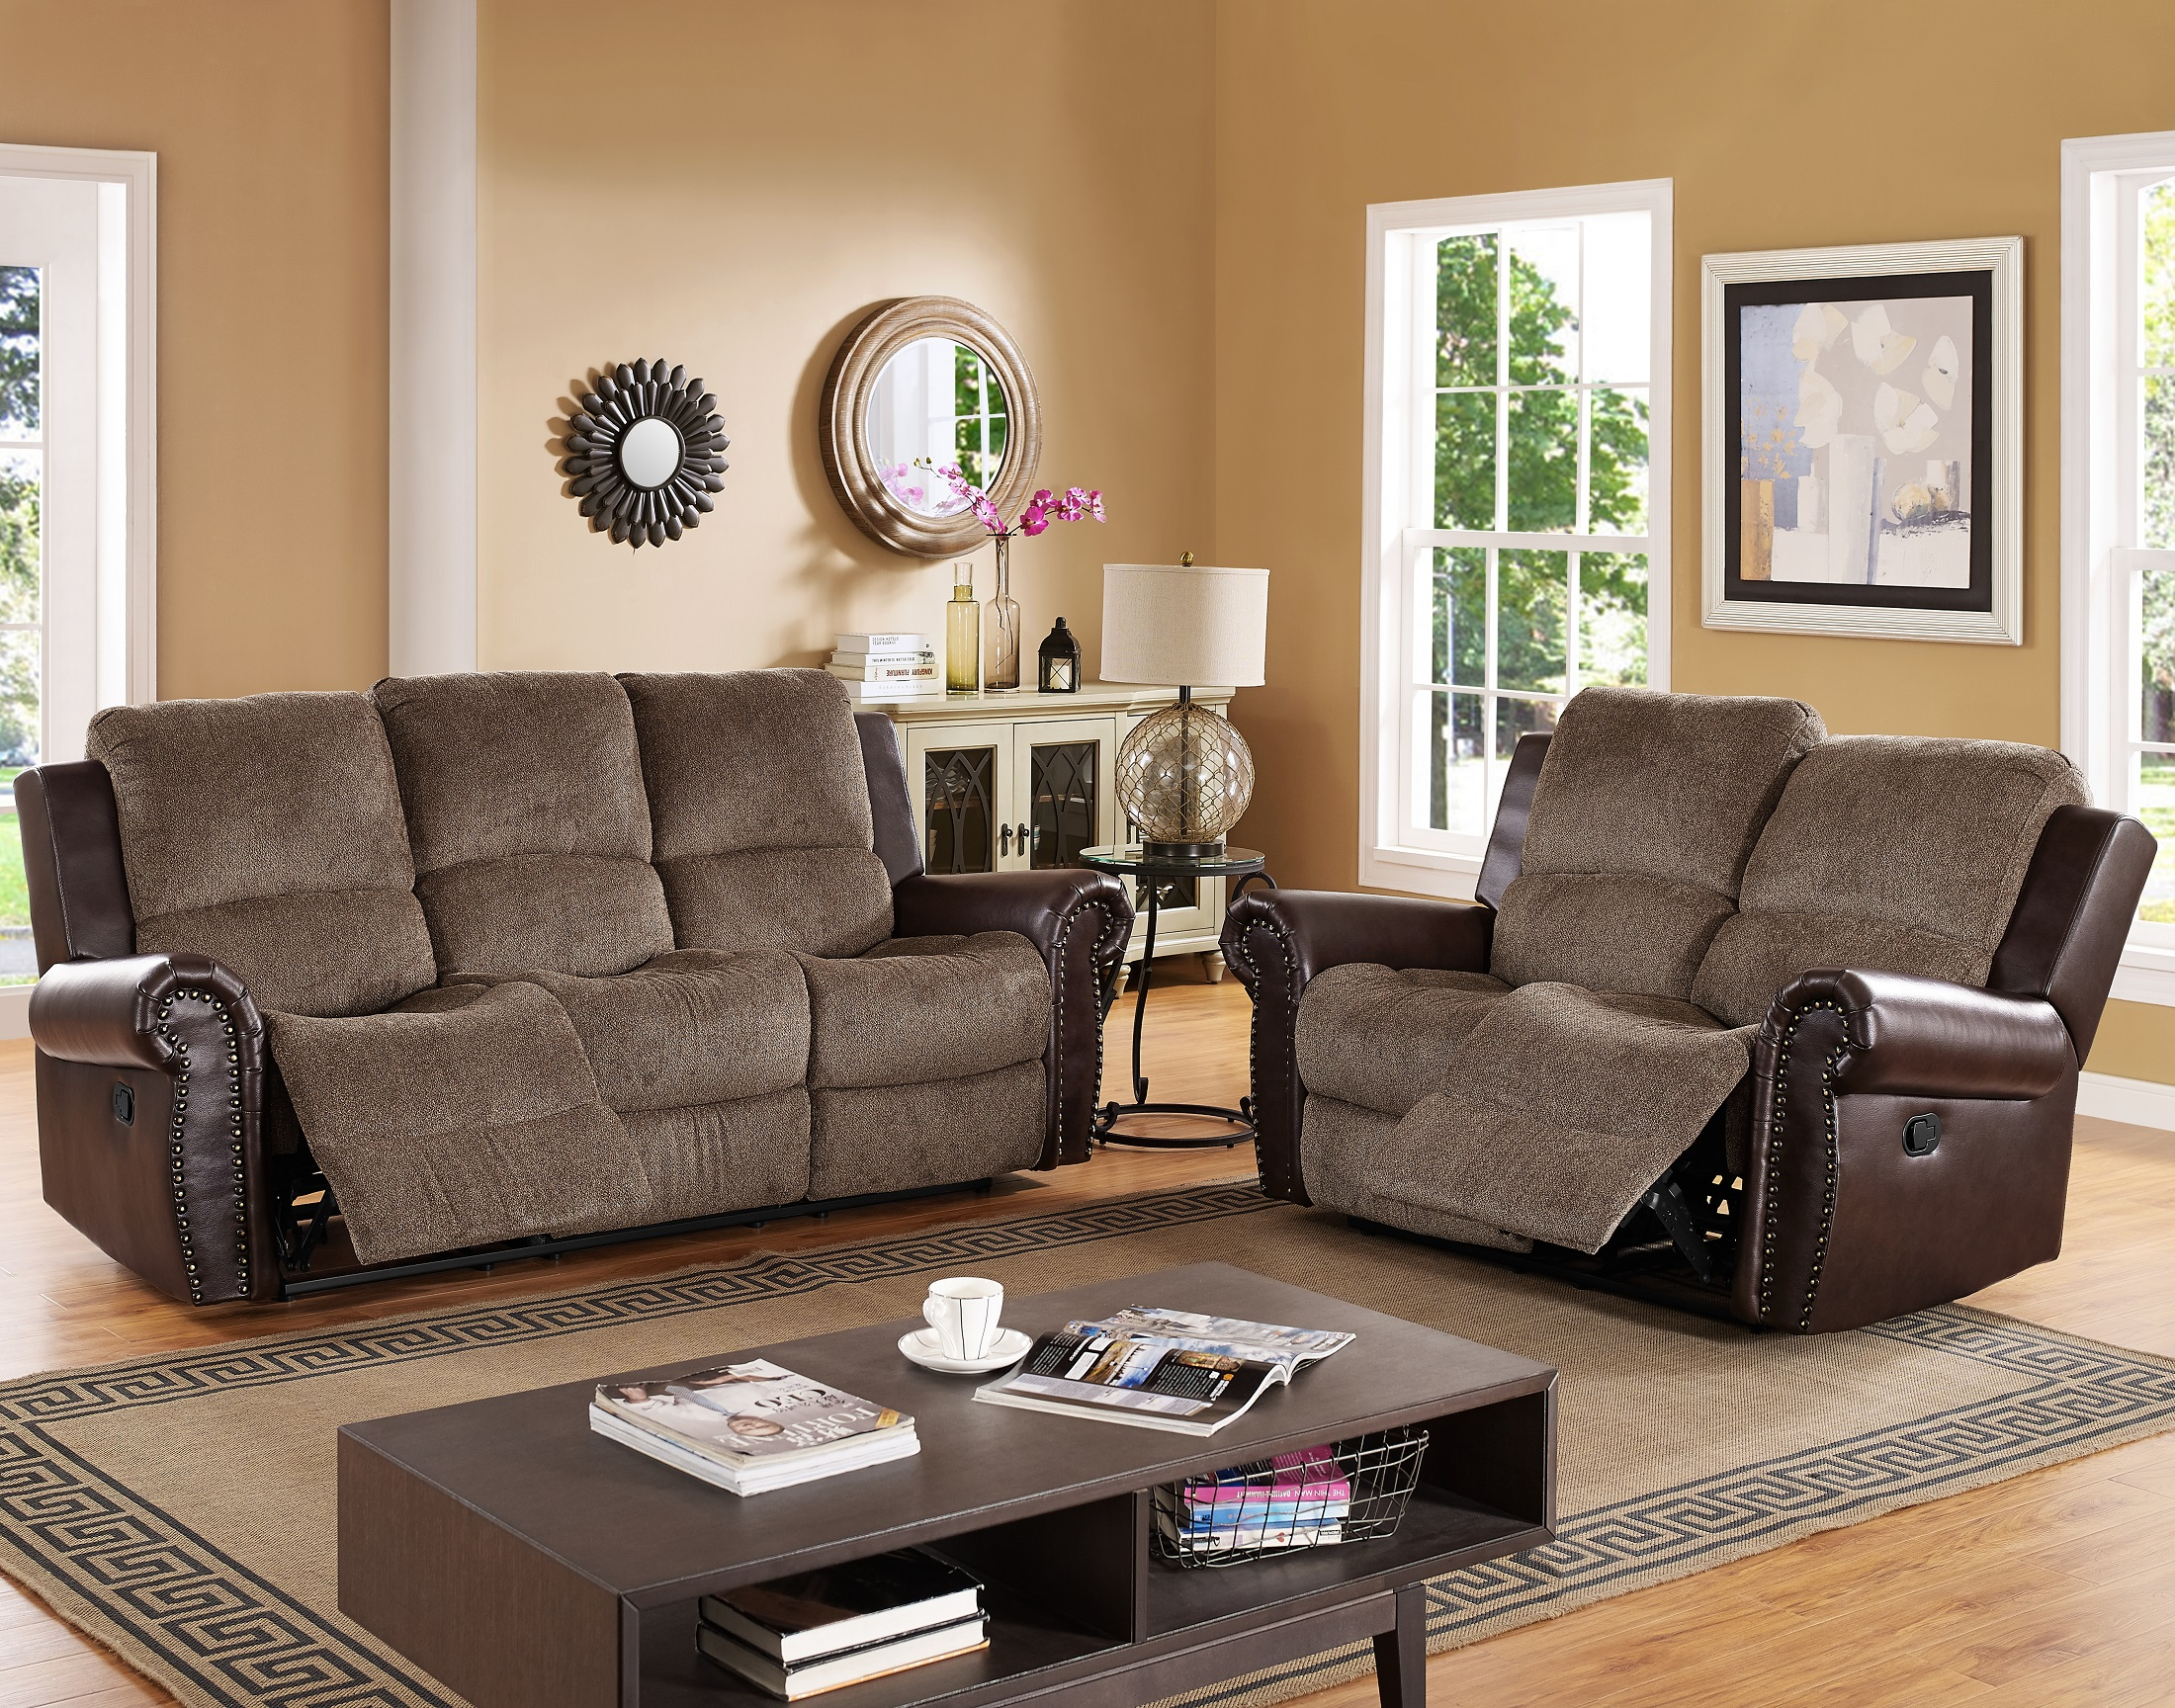 Living Spaces Recliners : Living spaces - Couch Potato SLO - Furniture in San Luis ...